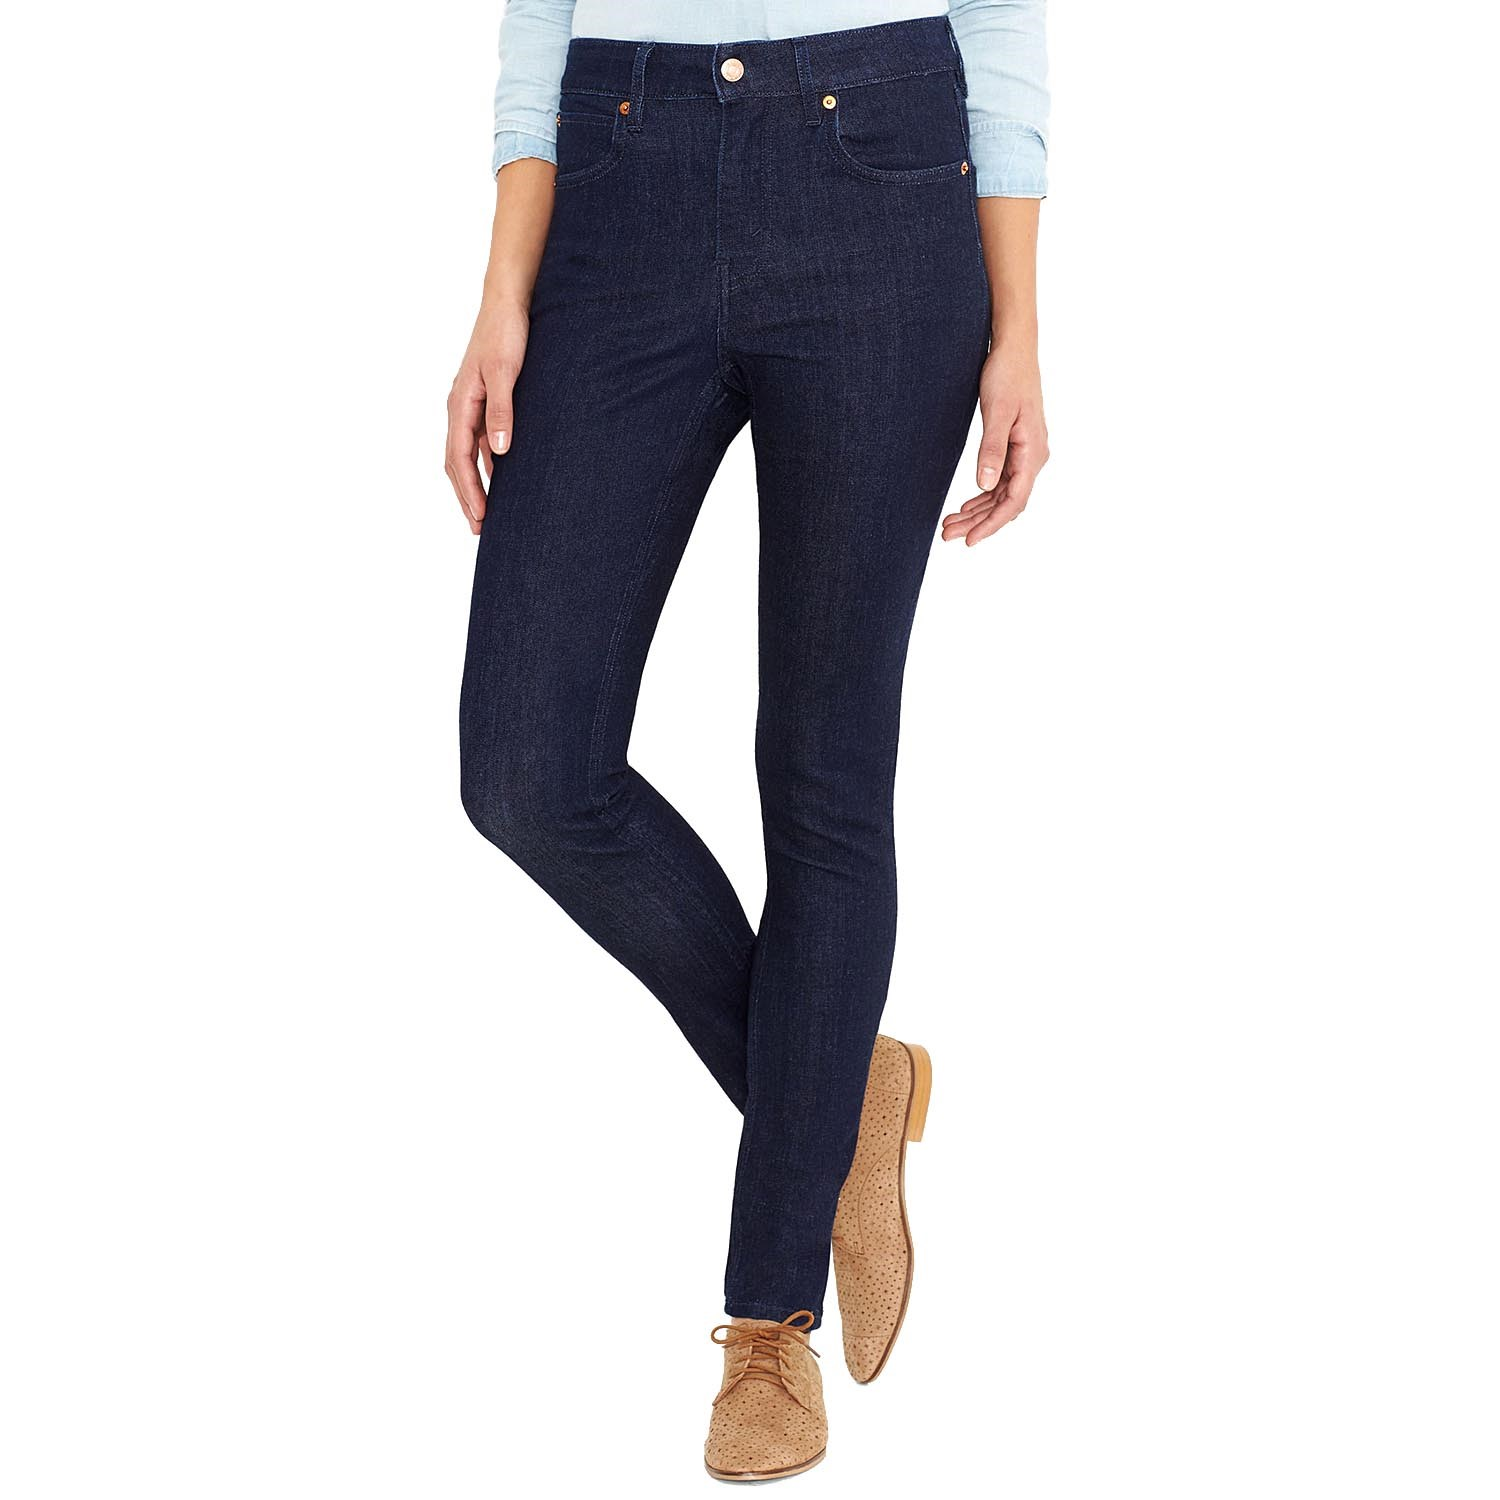 Levi's Commuter Skinny Jeans - Women's | evo outlet